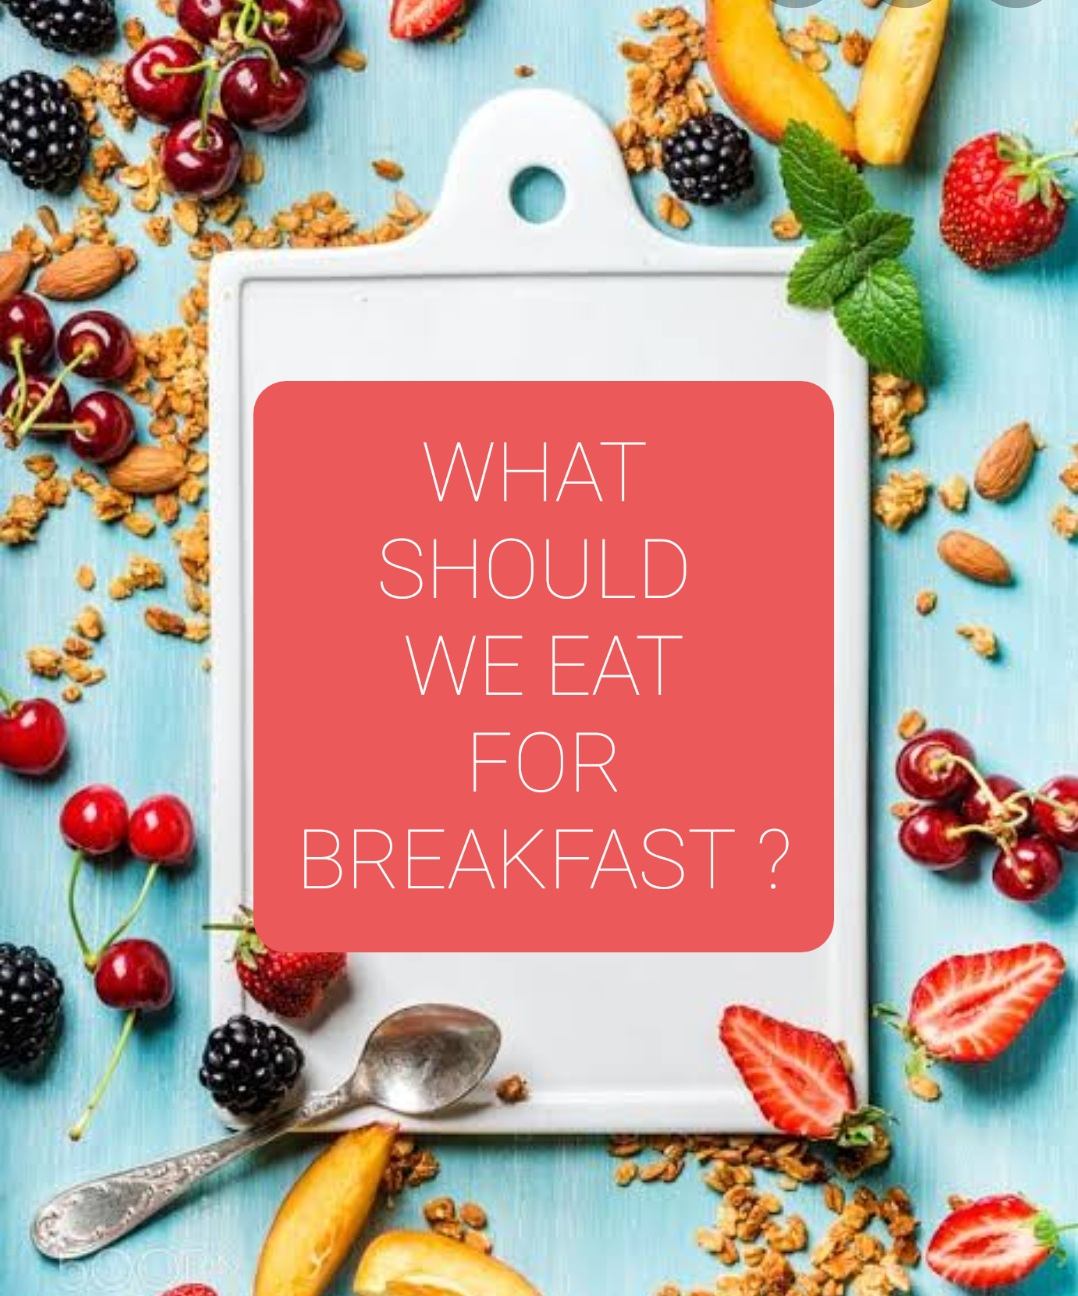 What should we eat for breakfast ?